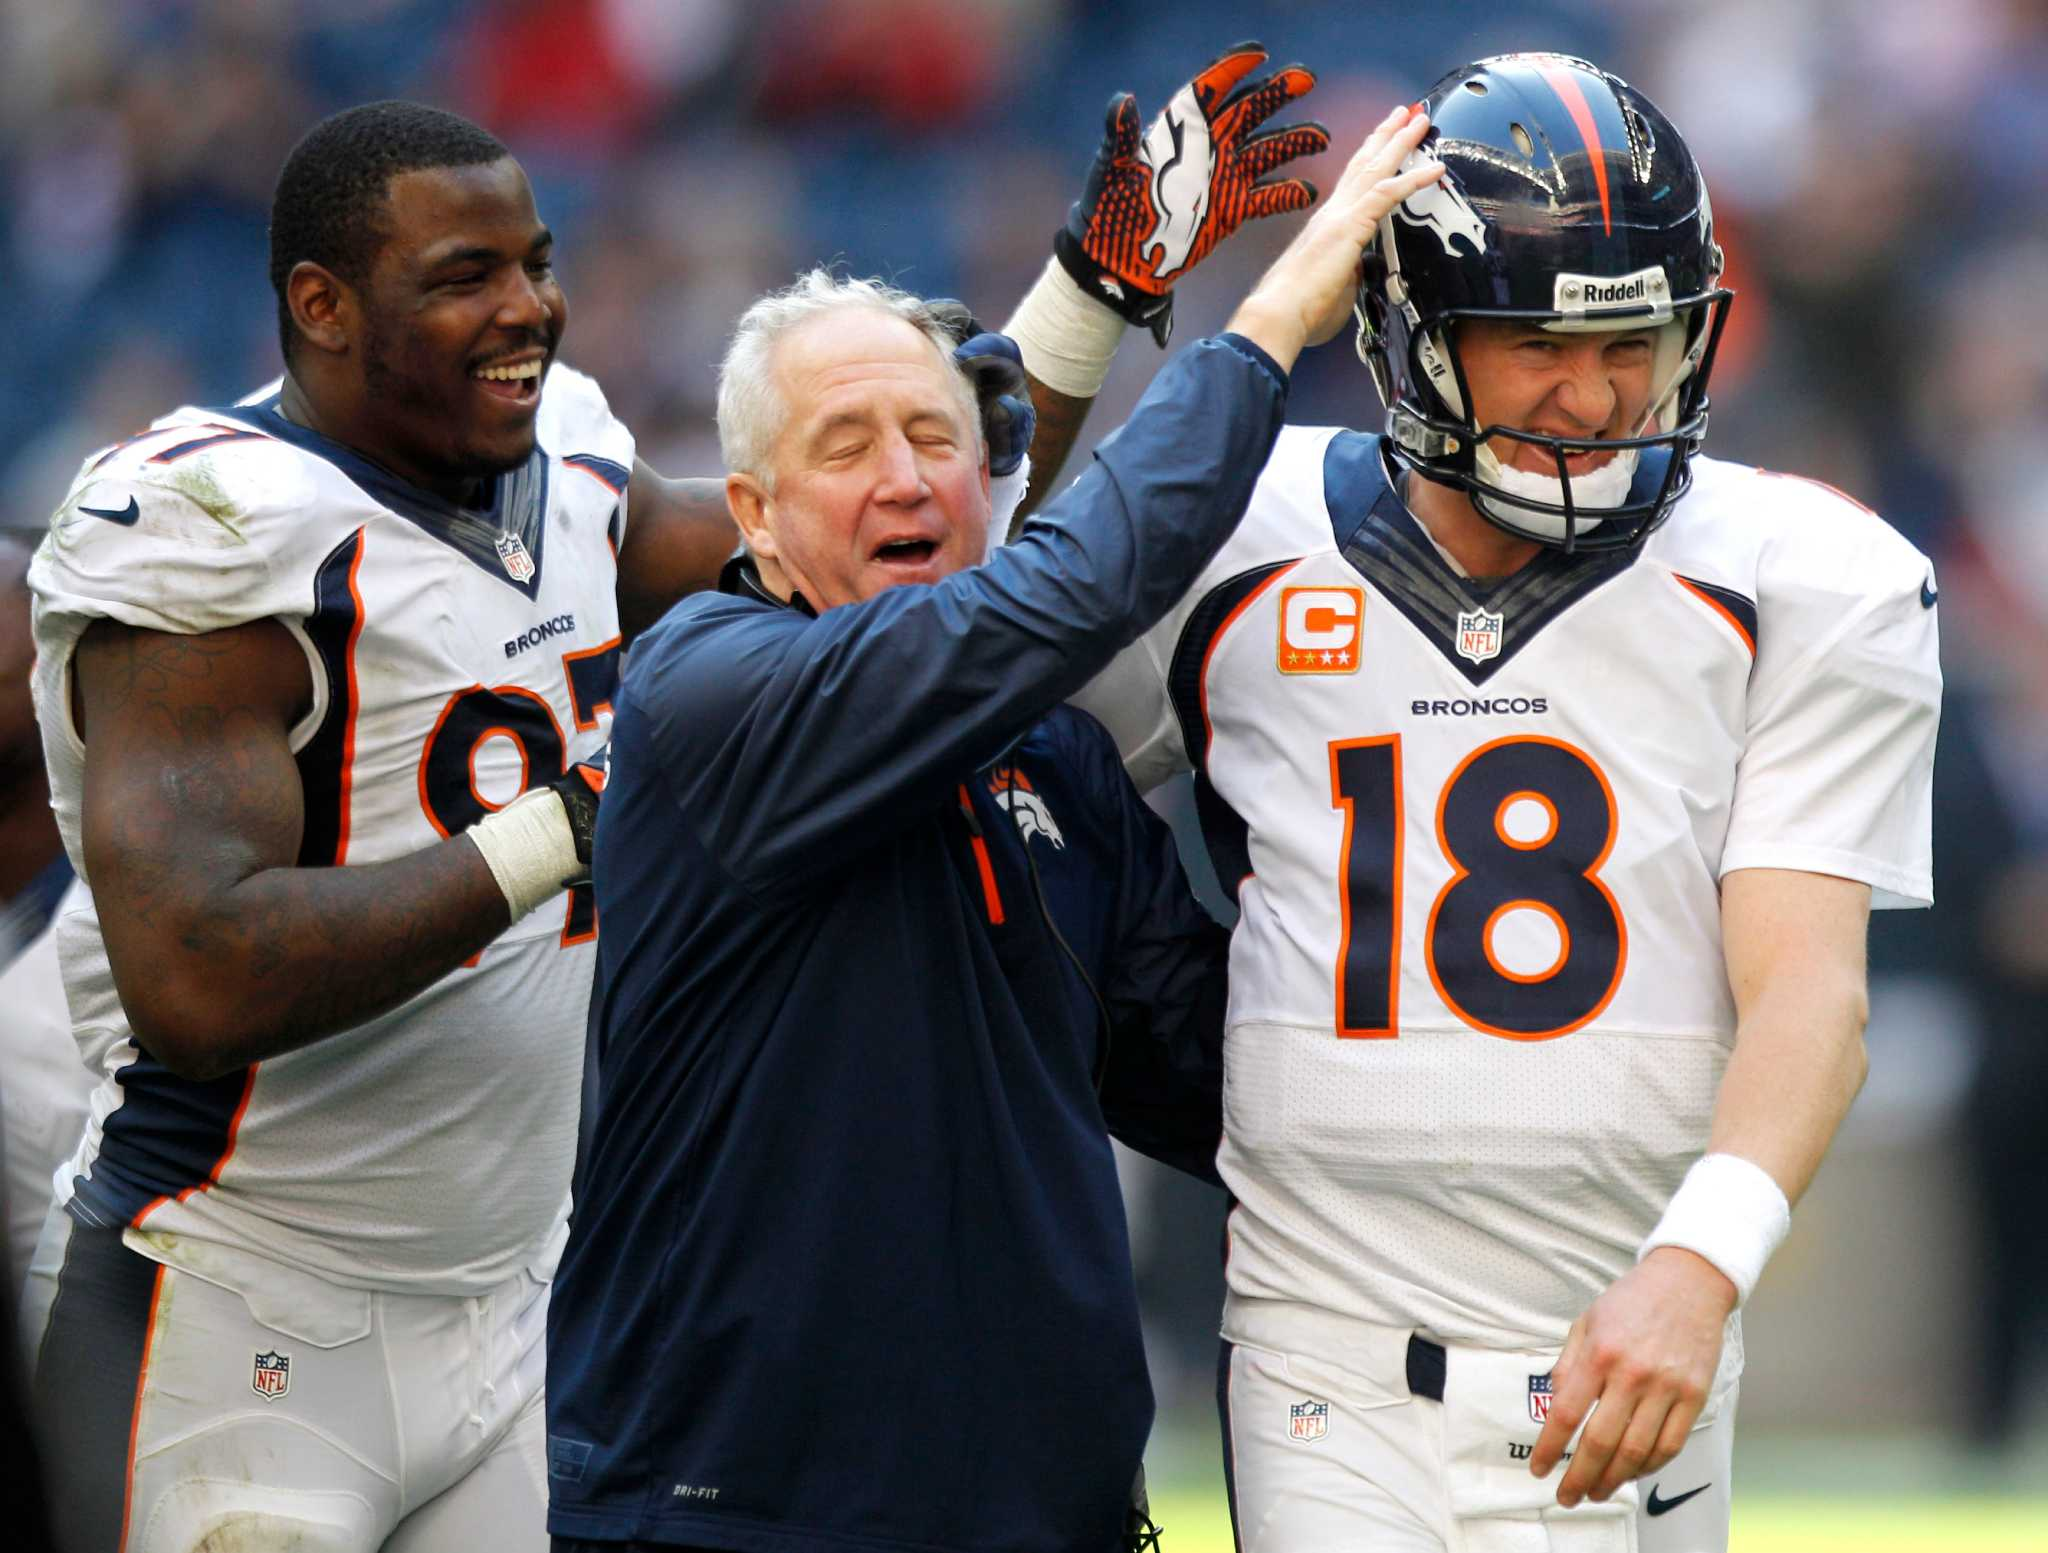 Manning caps big day by breaking mark for TD passes ...